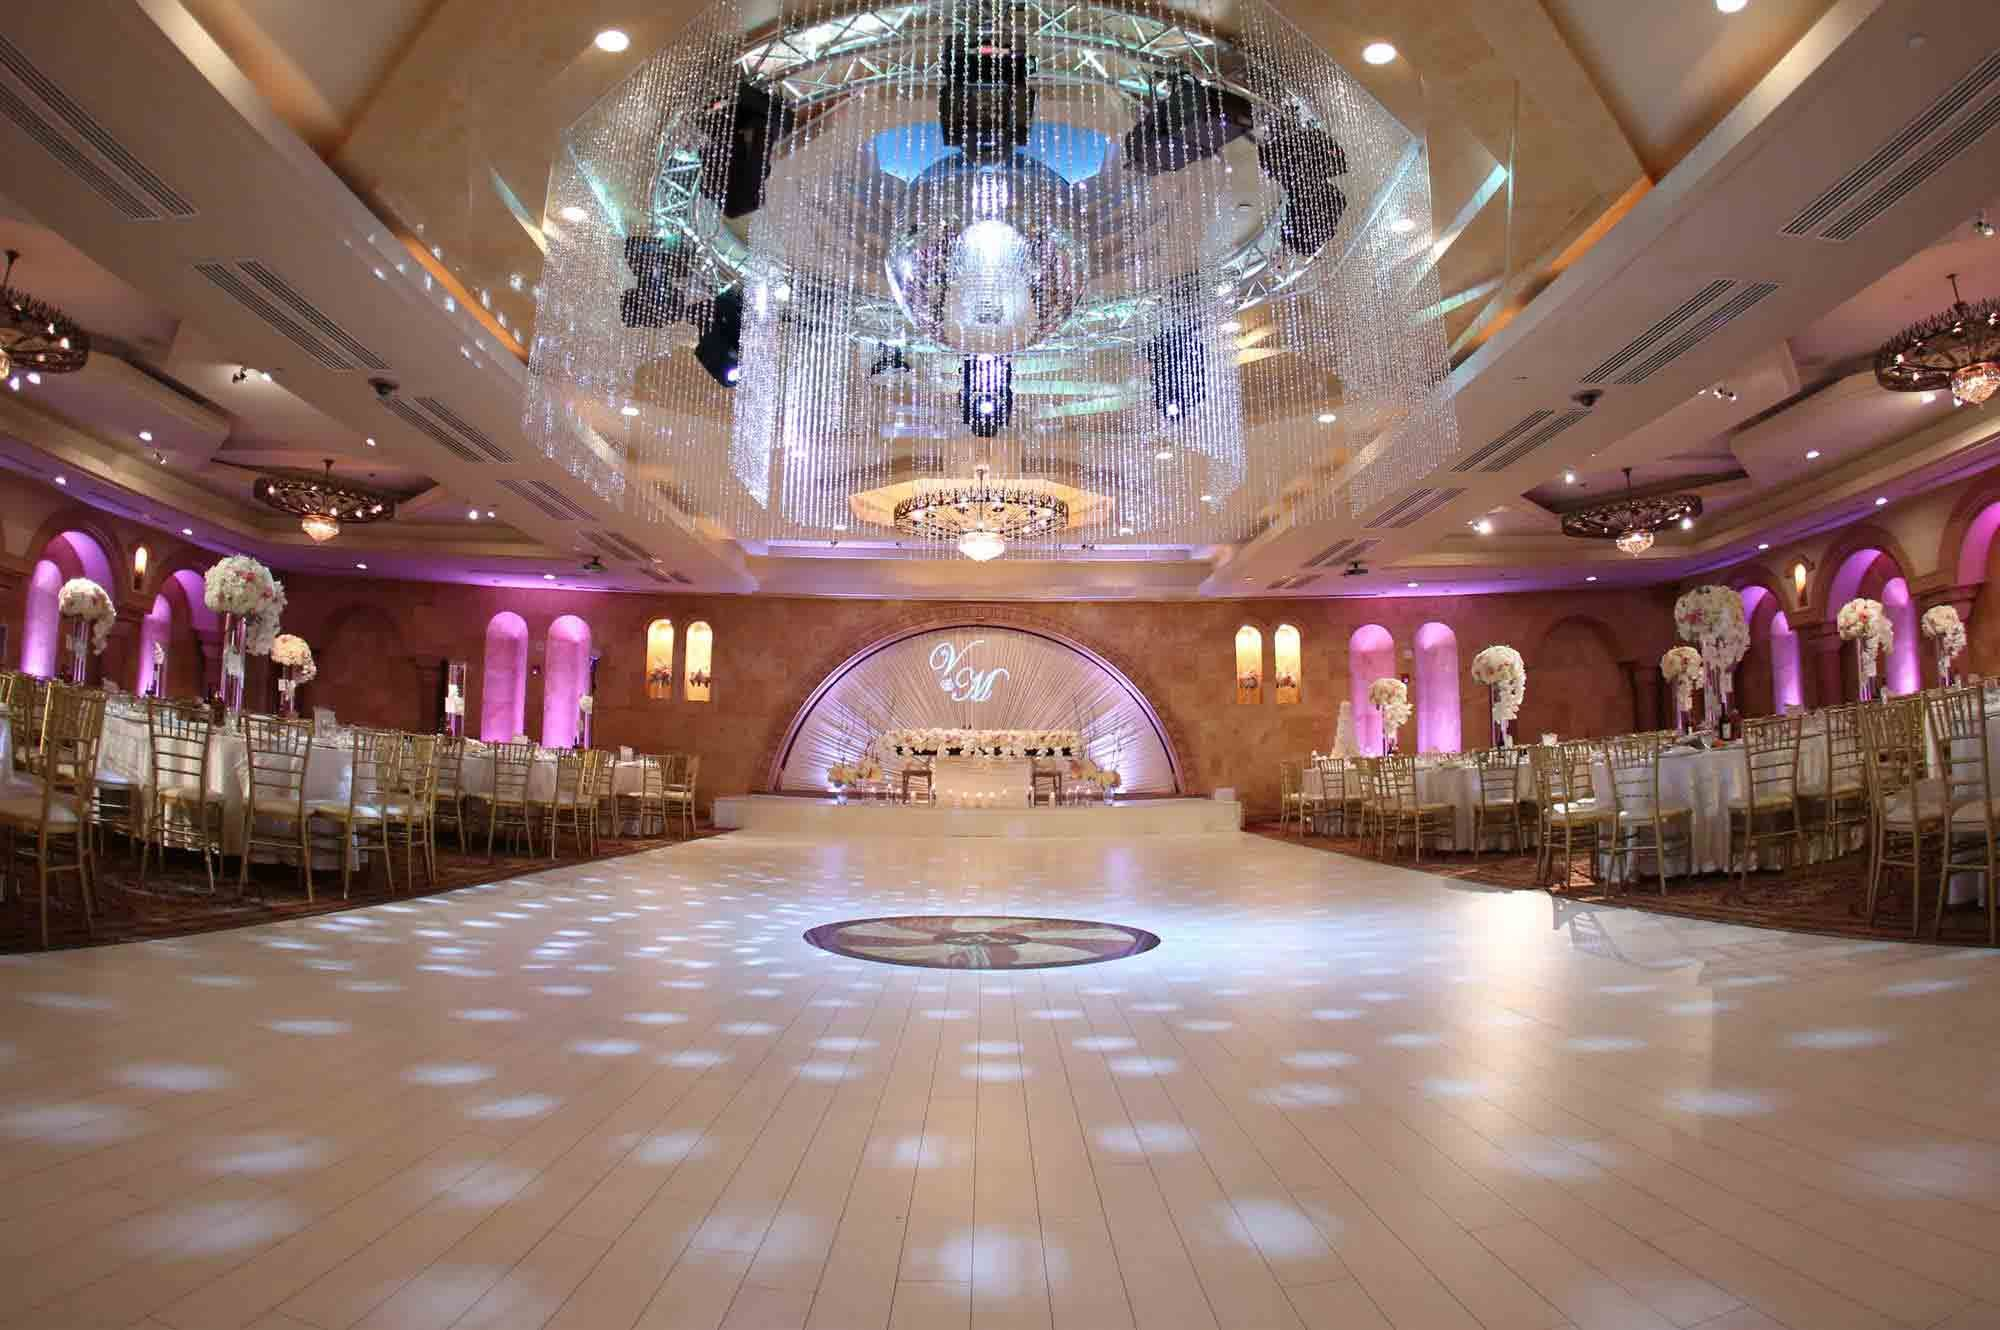 Fresh Wedding Reception Halls Near Me: Most Beautiful Ballroom In The World